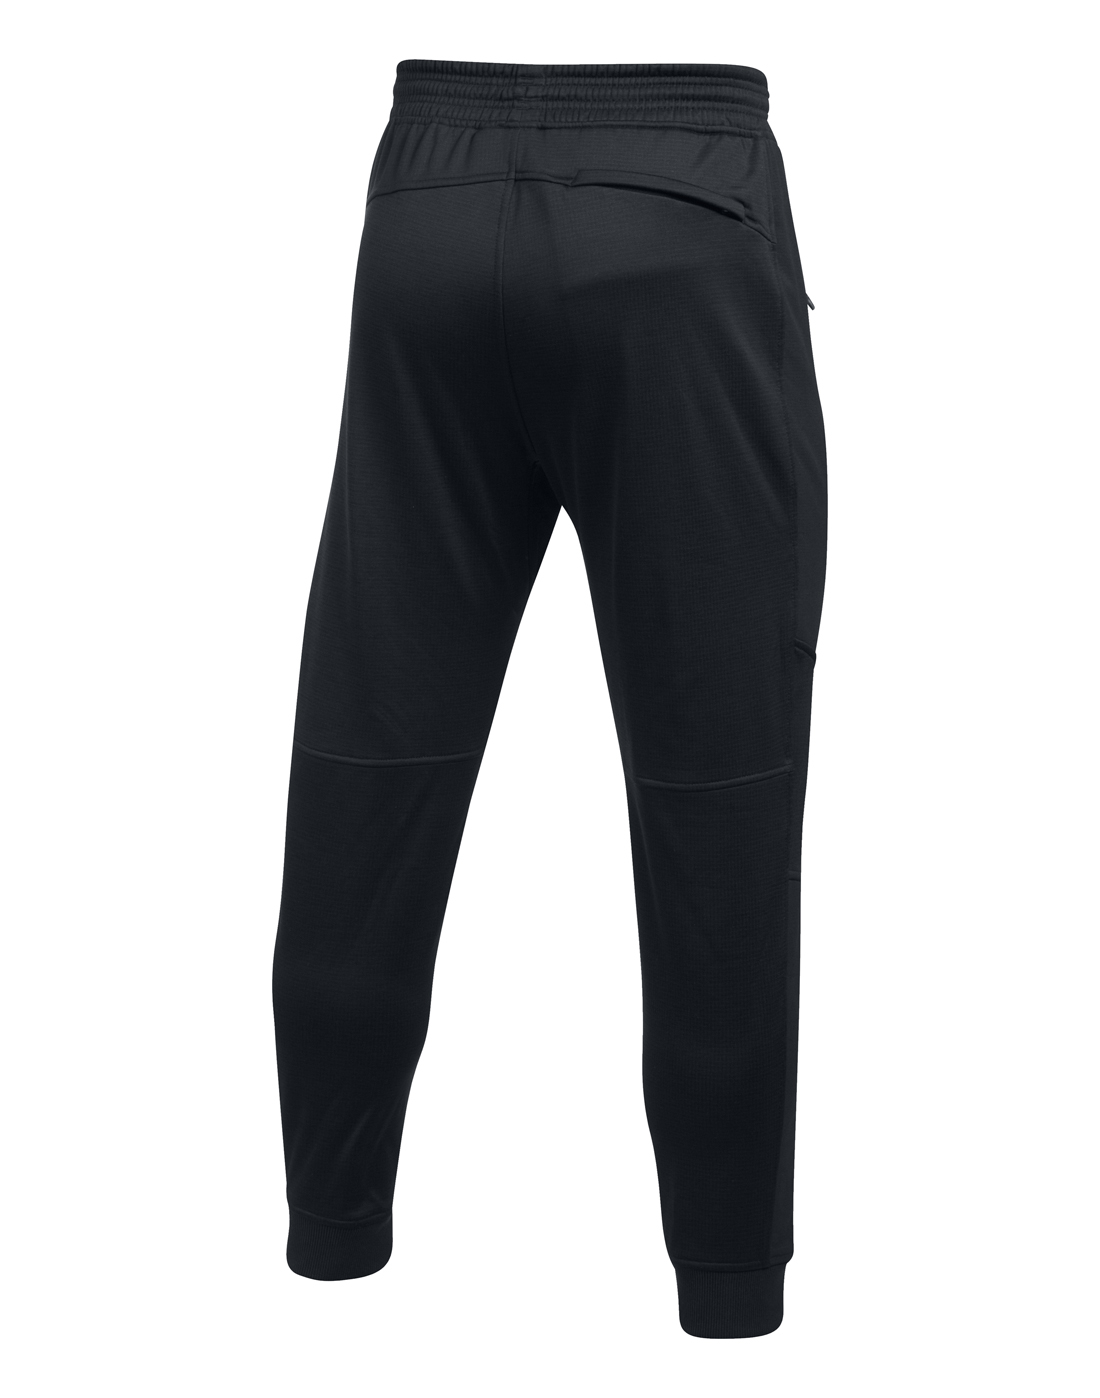 27f1453bbf7a4a Under Armour Mens Reactor Tapered Pant | Life Style Sports